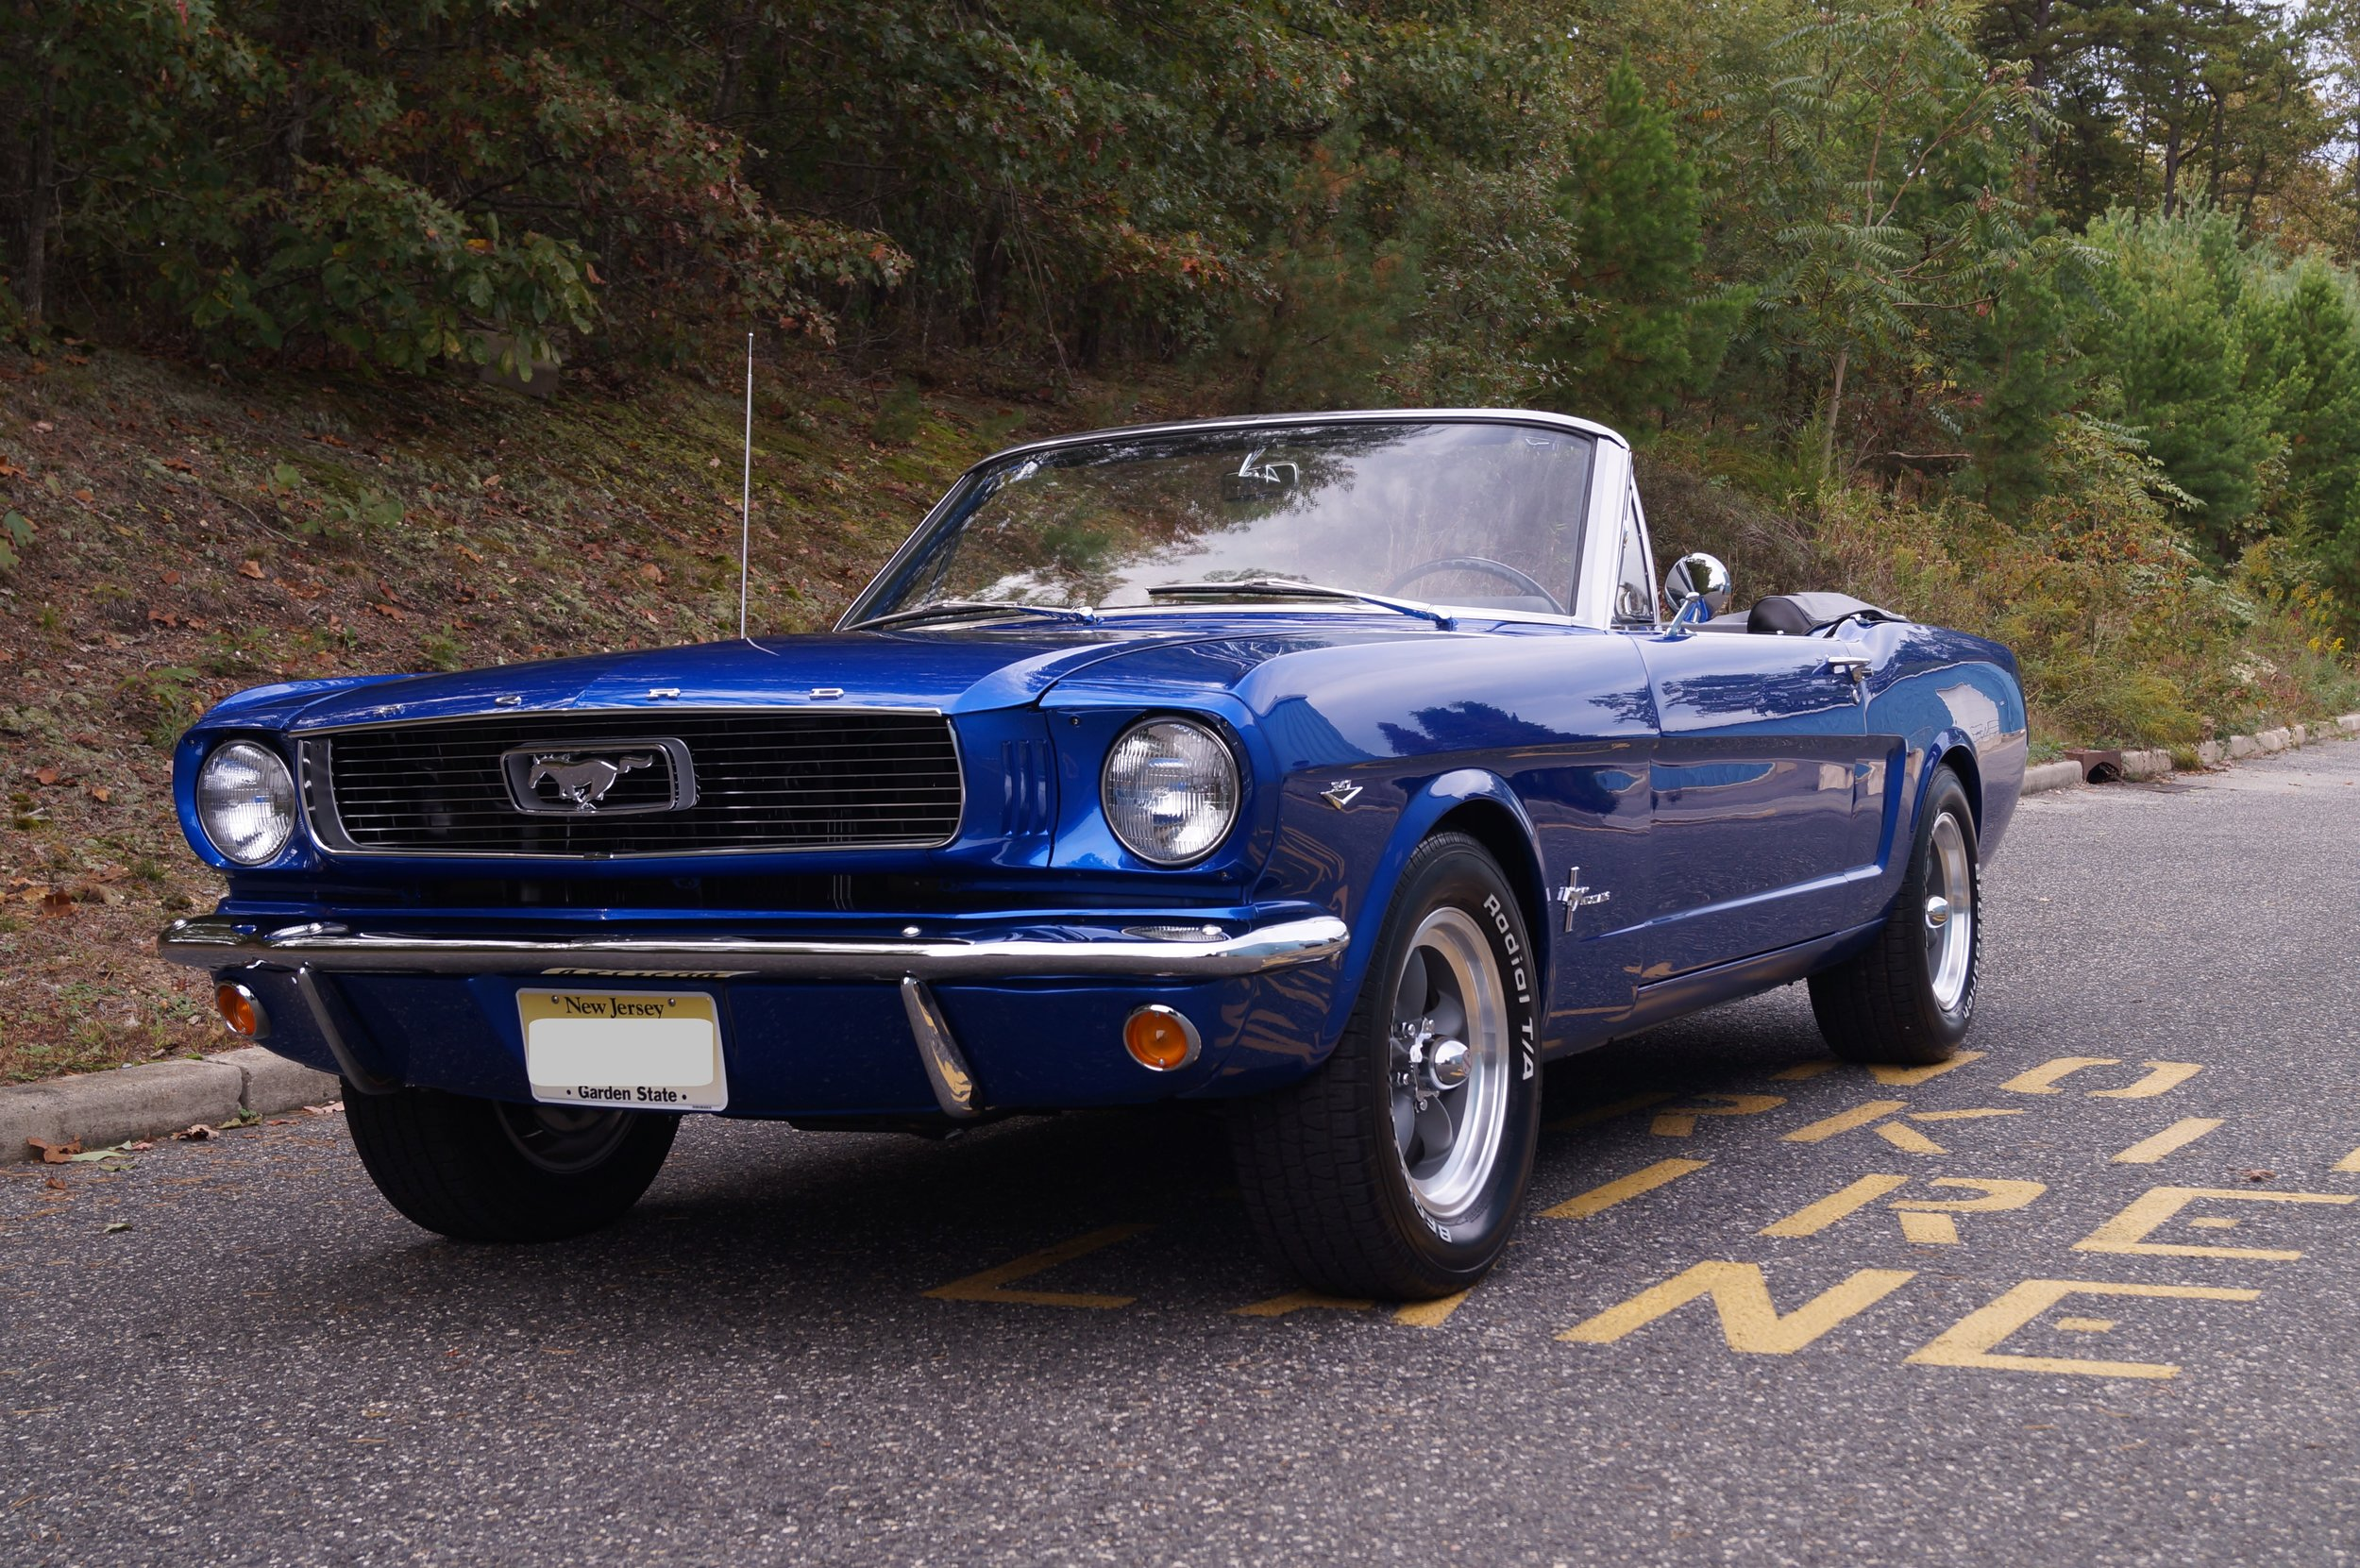 1966 Ford Mustang 347 - This Mustang spent its twilight years as an under-powered and neglected pony car, but as you can see, has been reborn as an electric blue, earth-pounding stallion. We swapped out the 200 cubic inch engine for a 347 V8 that produces 425 horsepower! Mated with a Tremec 5-speed, this sure makes for one fun driver! And drive it the owner did. Just weeks after its completion, this car took a road trip from New Jersey to Colorado and back! If the paint looks especially like eye candy to you, that's because it is. This is a three-stage paint, or otherwise known as a tri-coat. This means that there is one layer of solid color, followed by a second layer of a transparent color, and a third layer of clear coat.